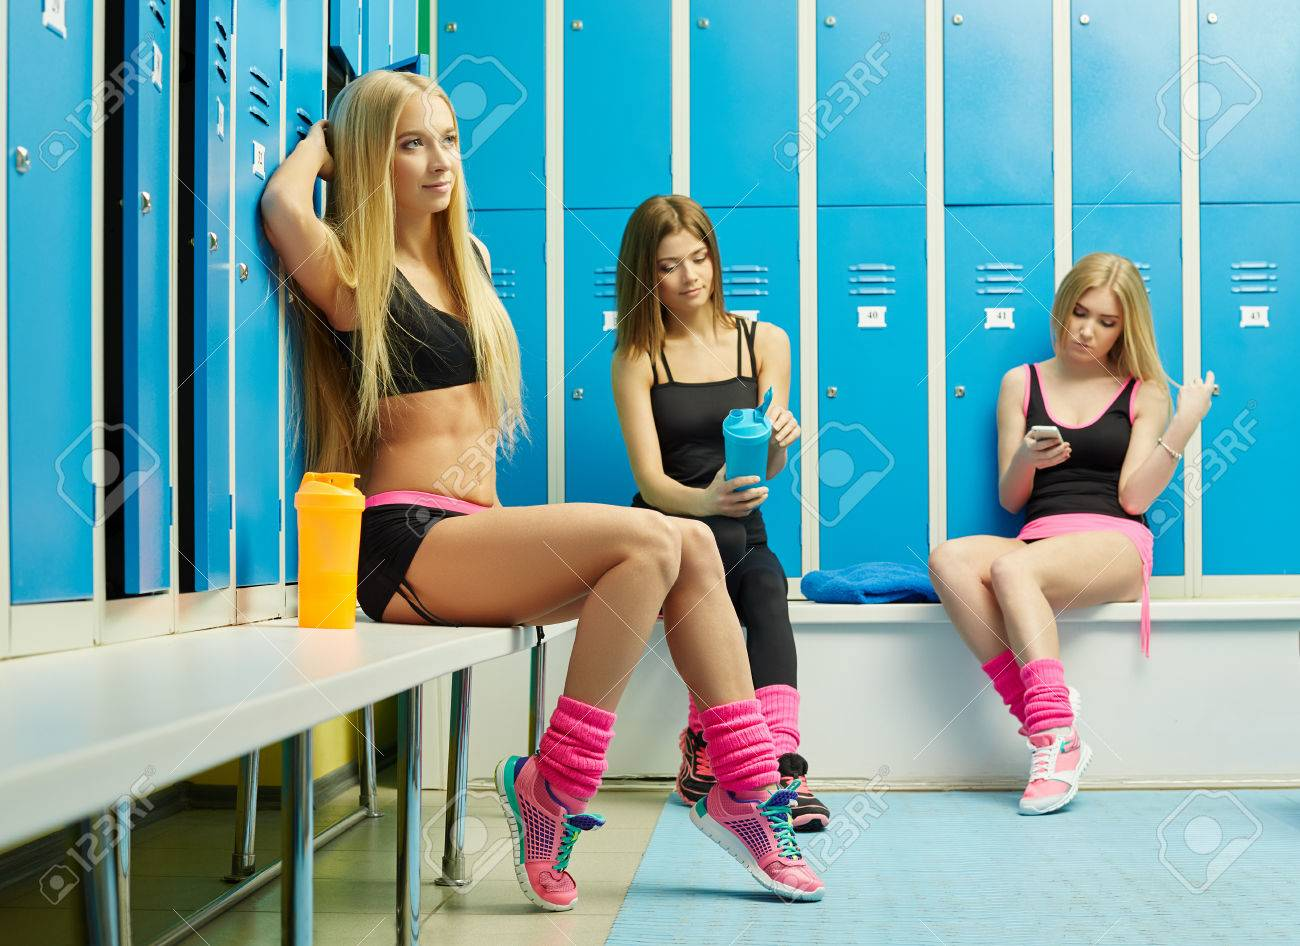 Locker room babes